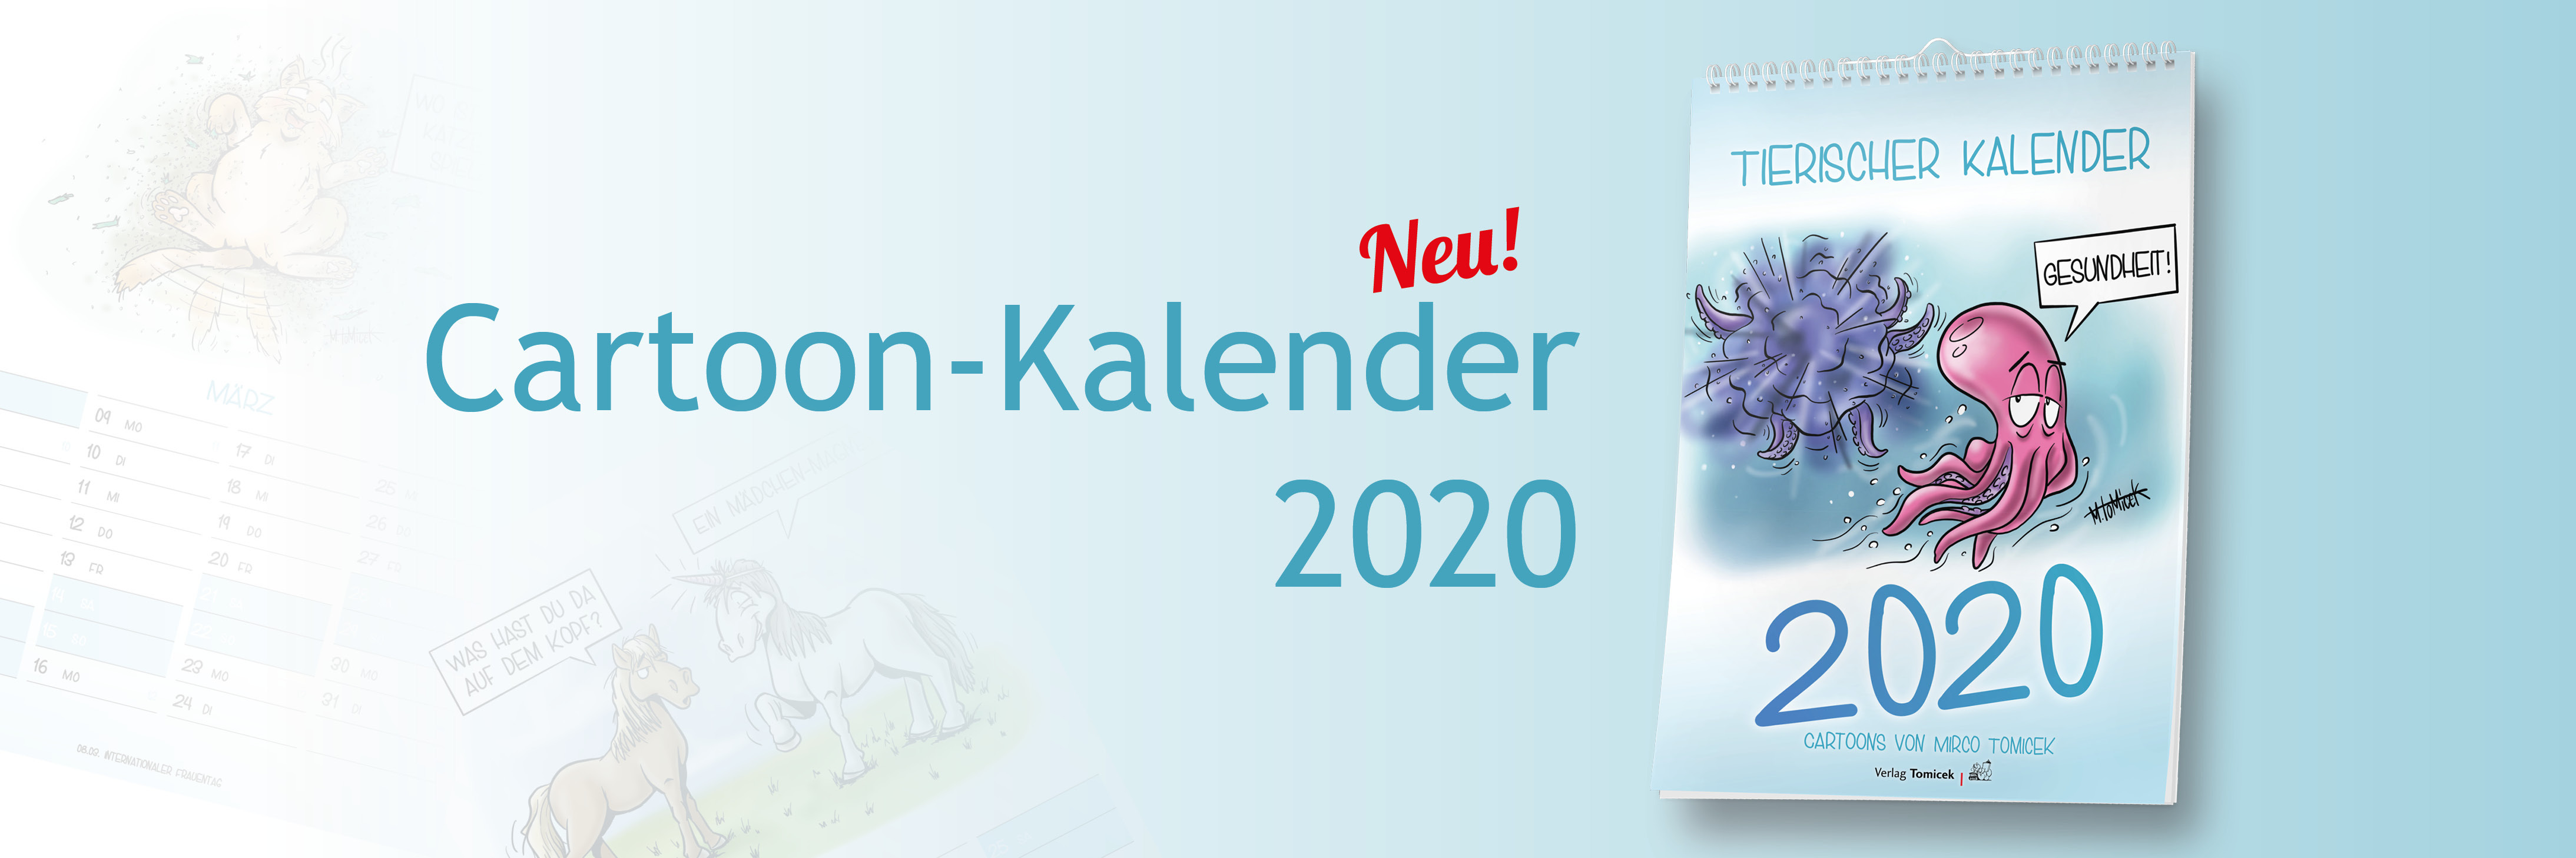 Cartoon-Kalender 2020